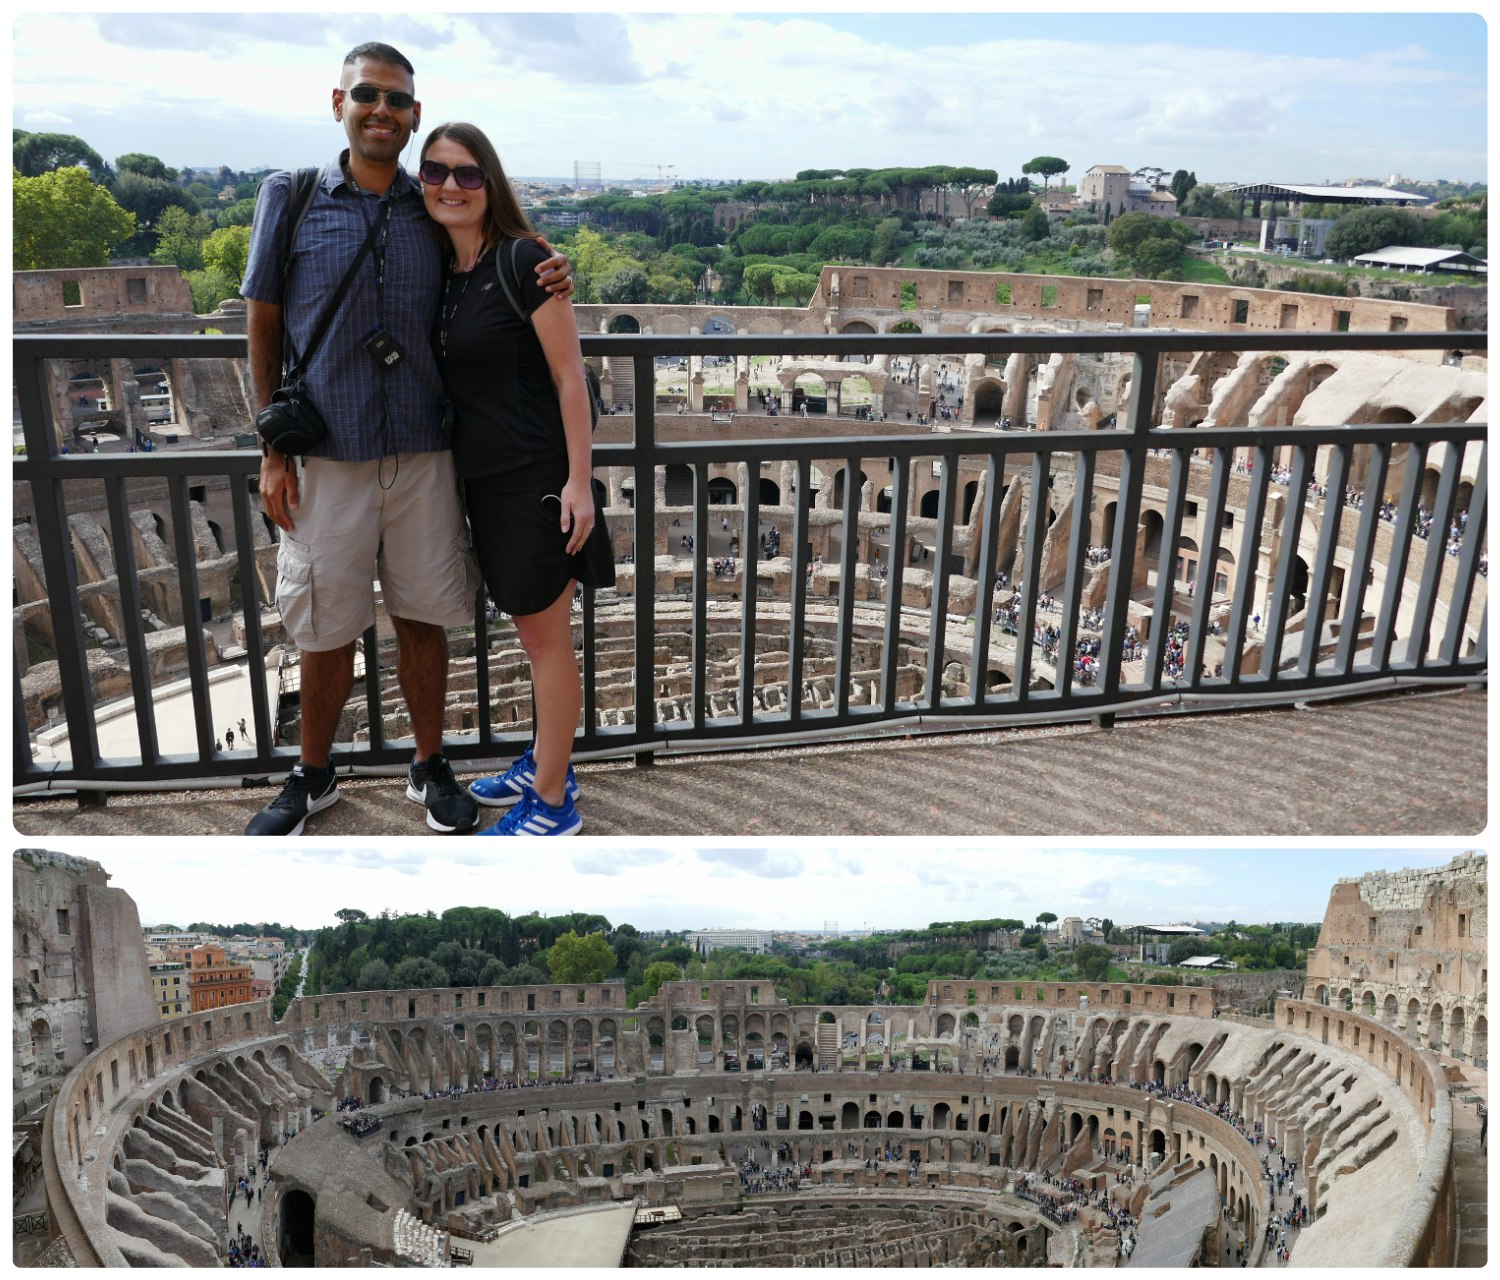 Us at the top/fifth level (Belvedere/Panoramic View) of the Roman Colosseum and a panorama of the interior of the Roman Colosseum.